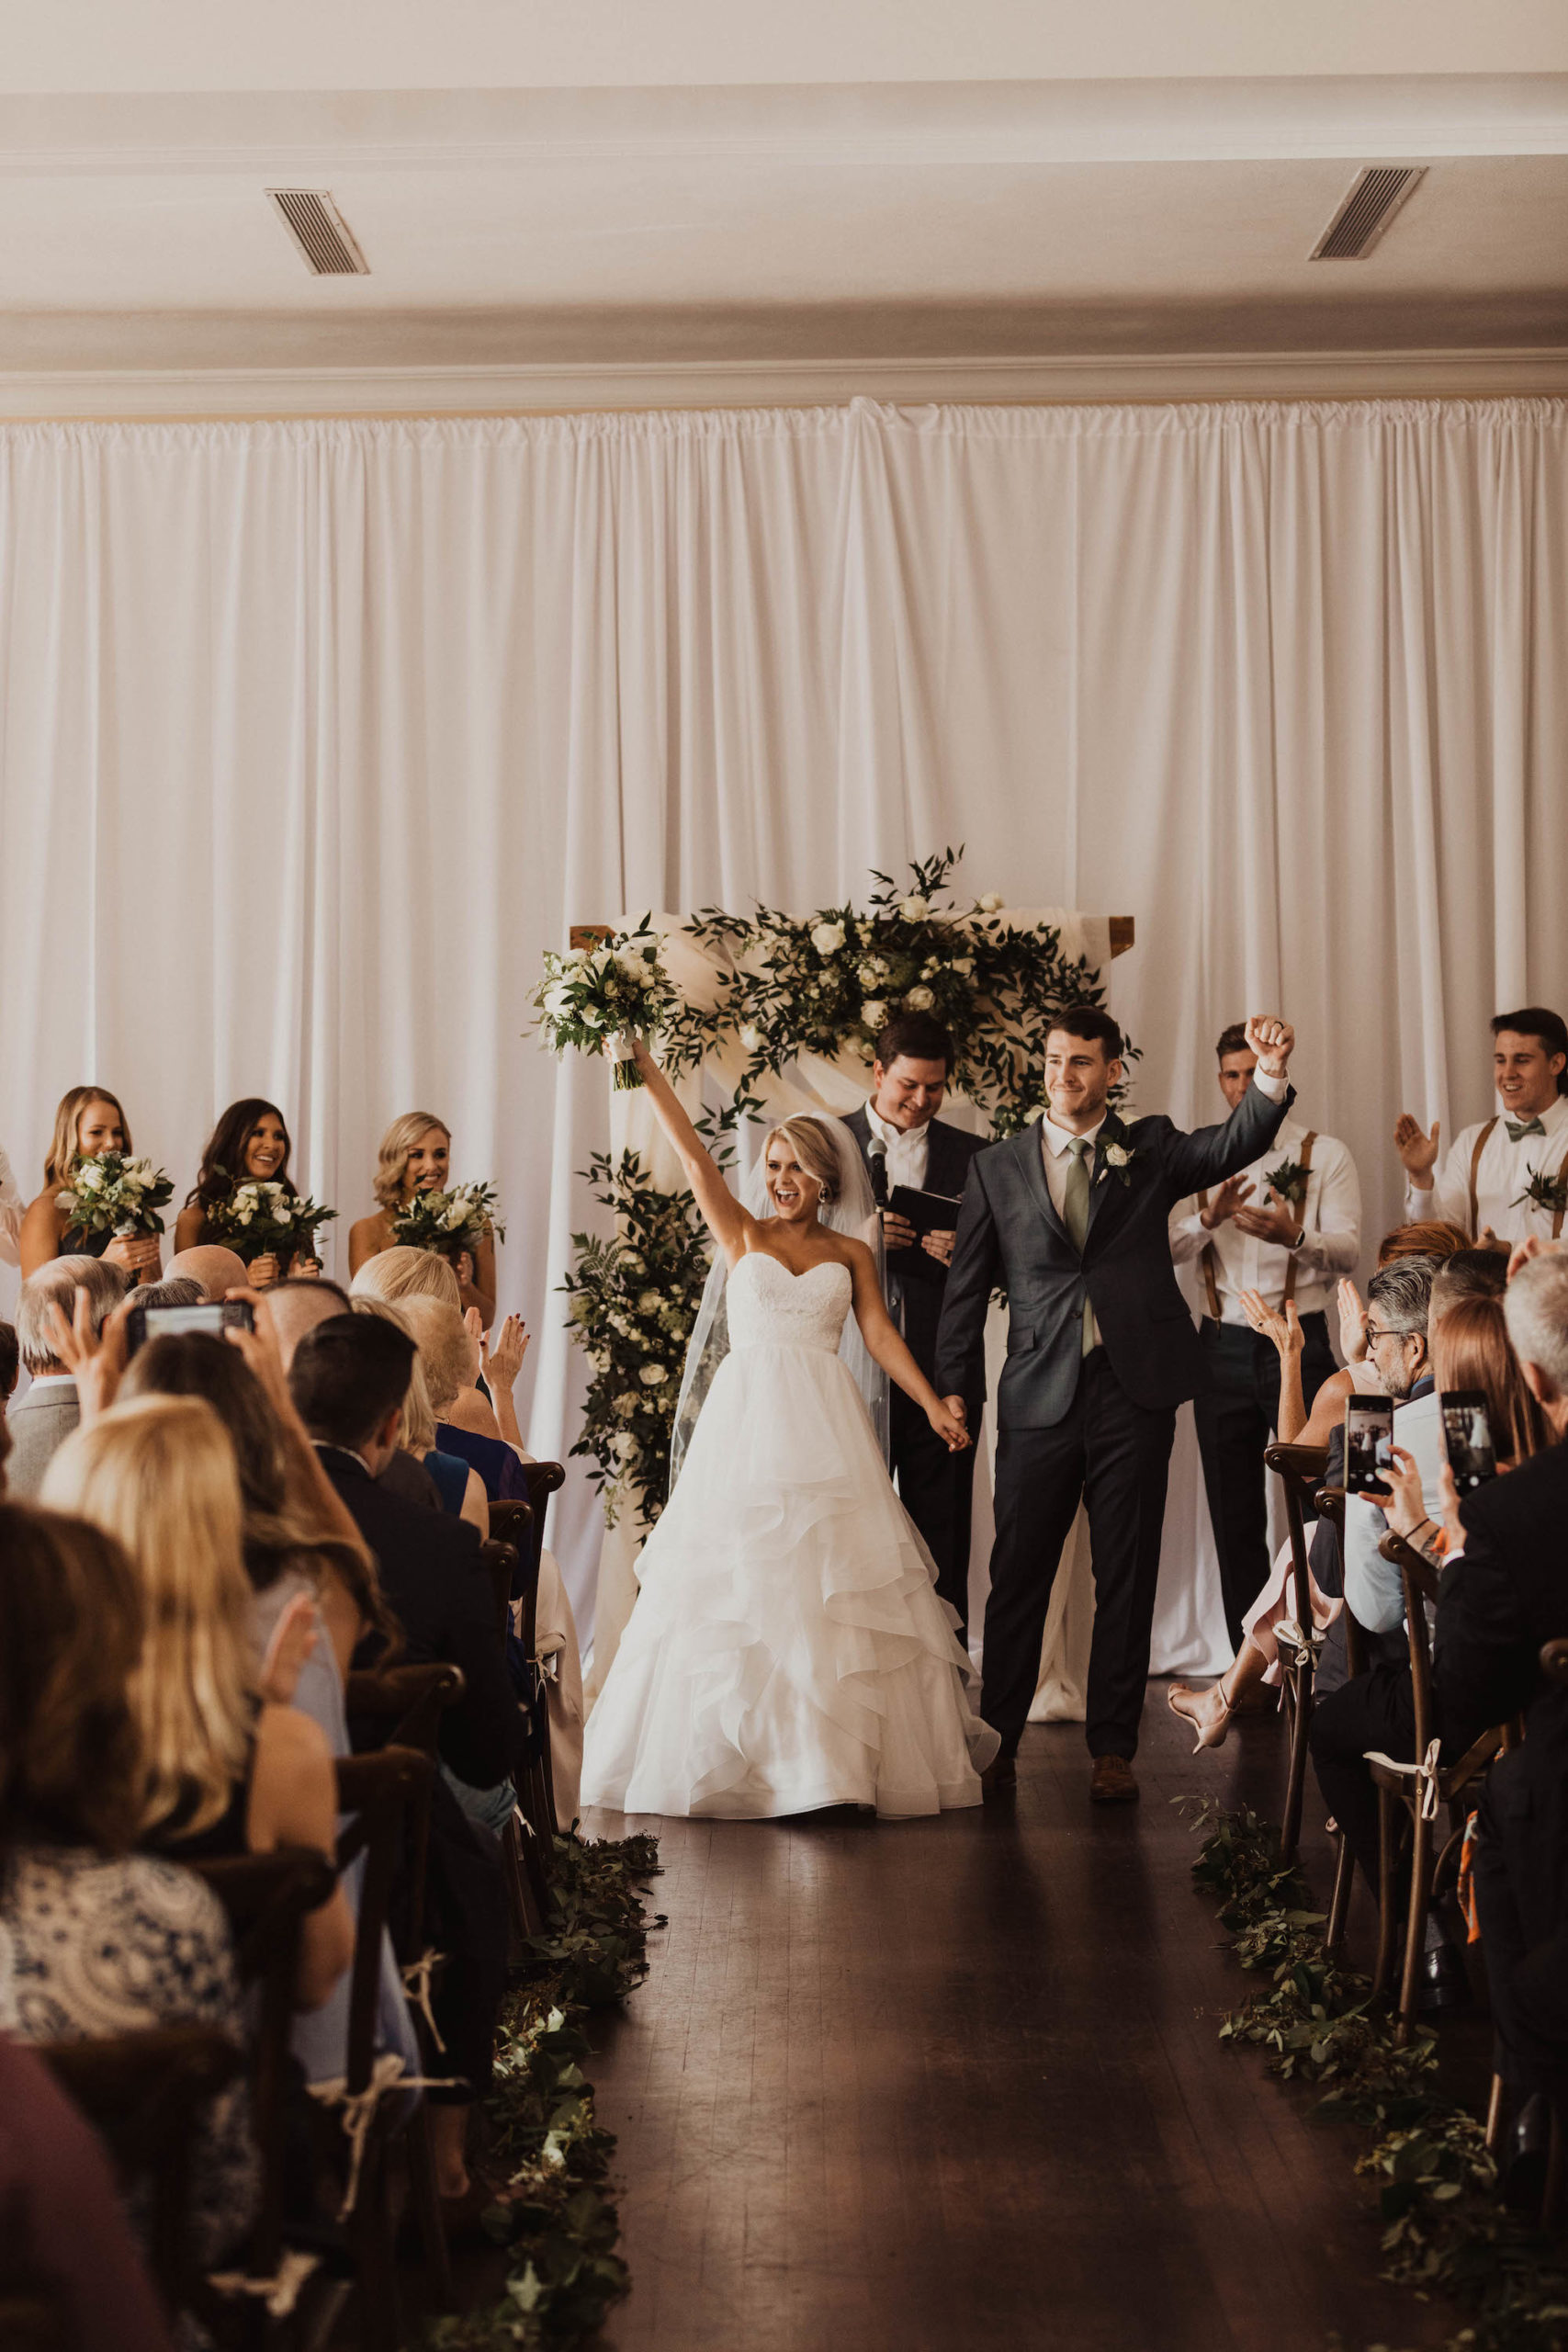 Excited Bride and Groom Reaction to Exchanging Wedding Vows | Tampa Bay Wedding Venue The Orlo